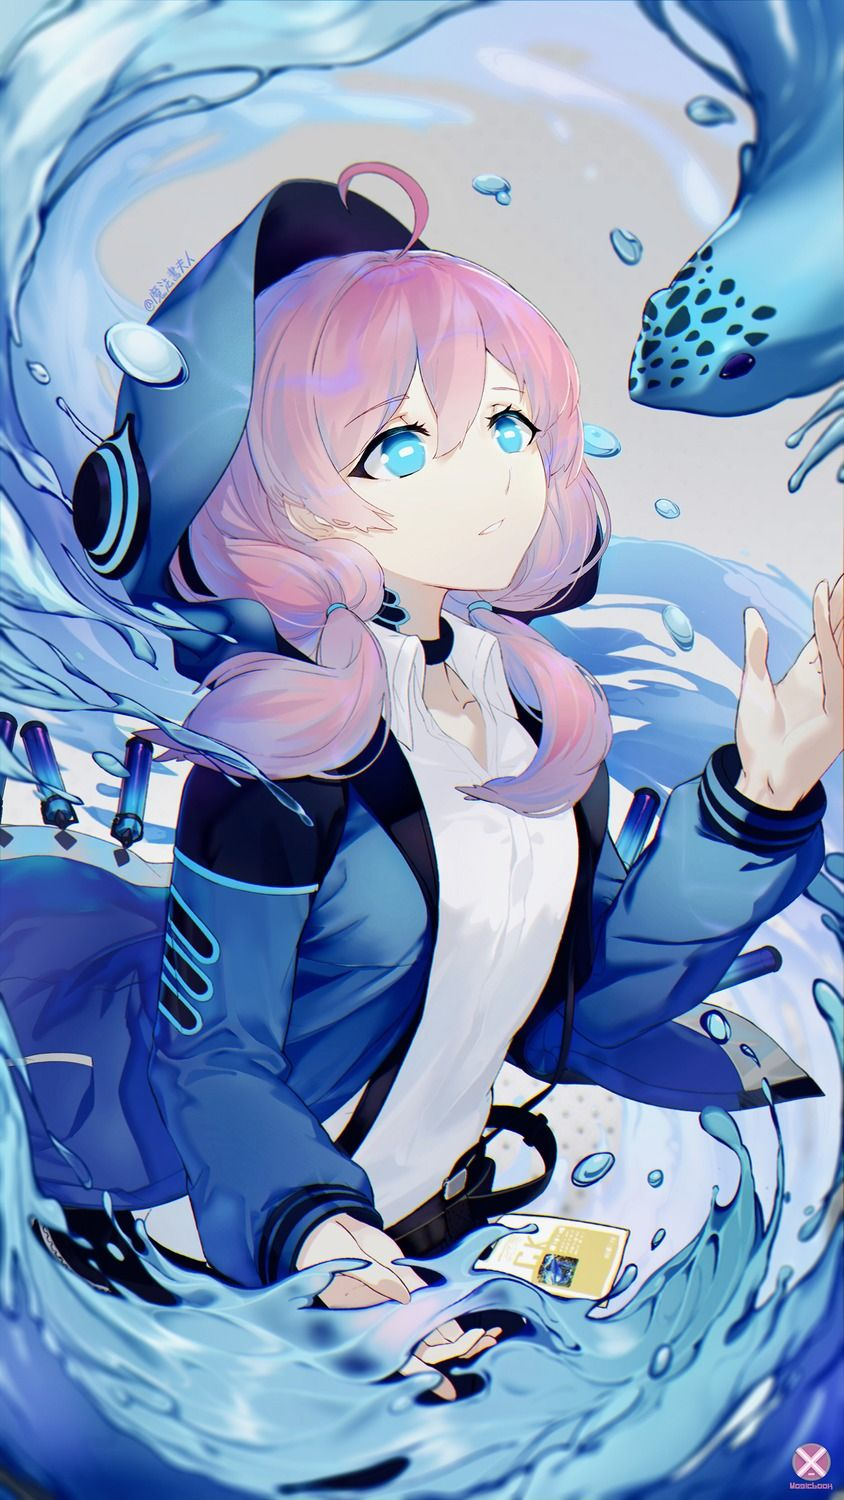 Pin By Will I Am On Arknights In 2020 Anime Anime Wallpaper Live Anime Wallpaper